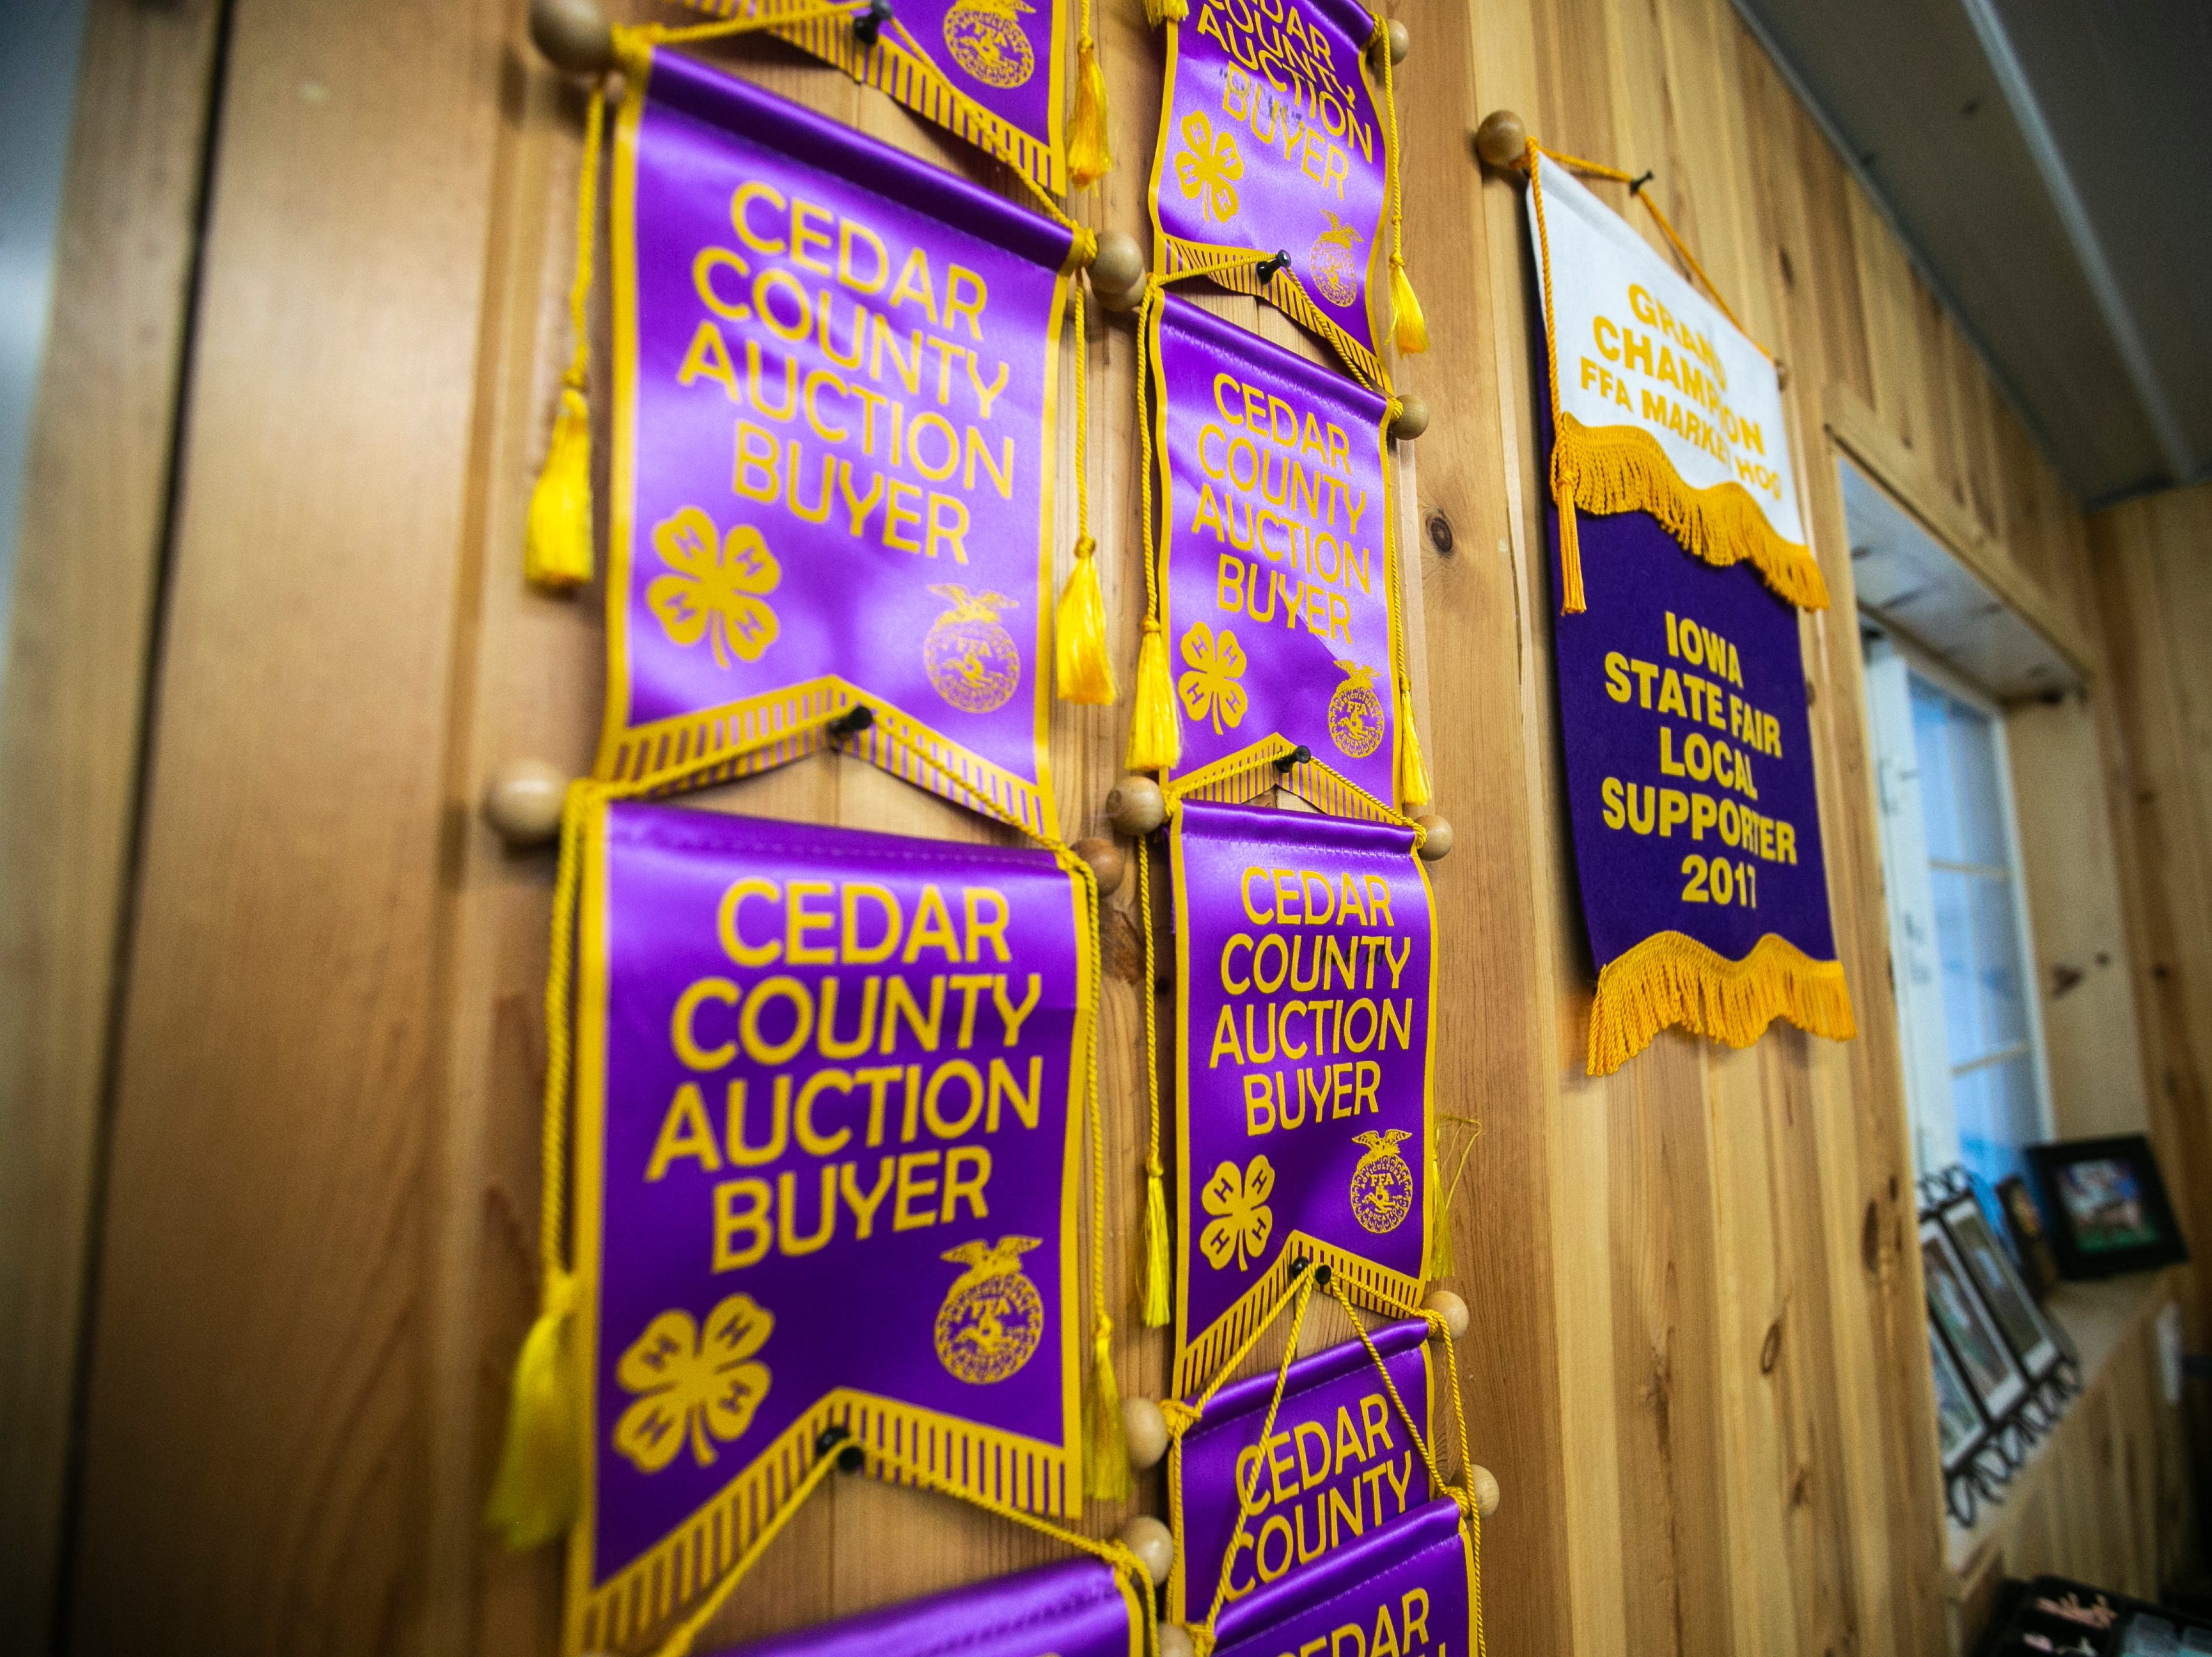 Cedar County auction ribbons hang in an office on Thursday, Jan. 17, 2019, at Natural Oak Pork farm in West Branch, Iowa.